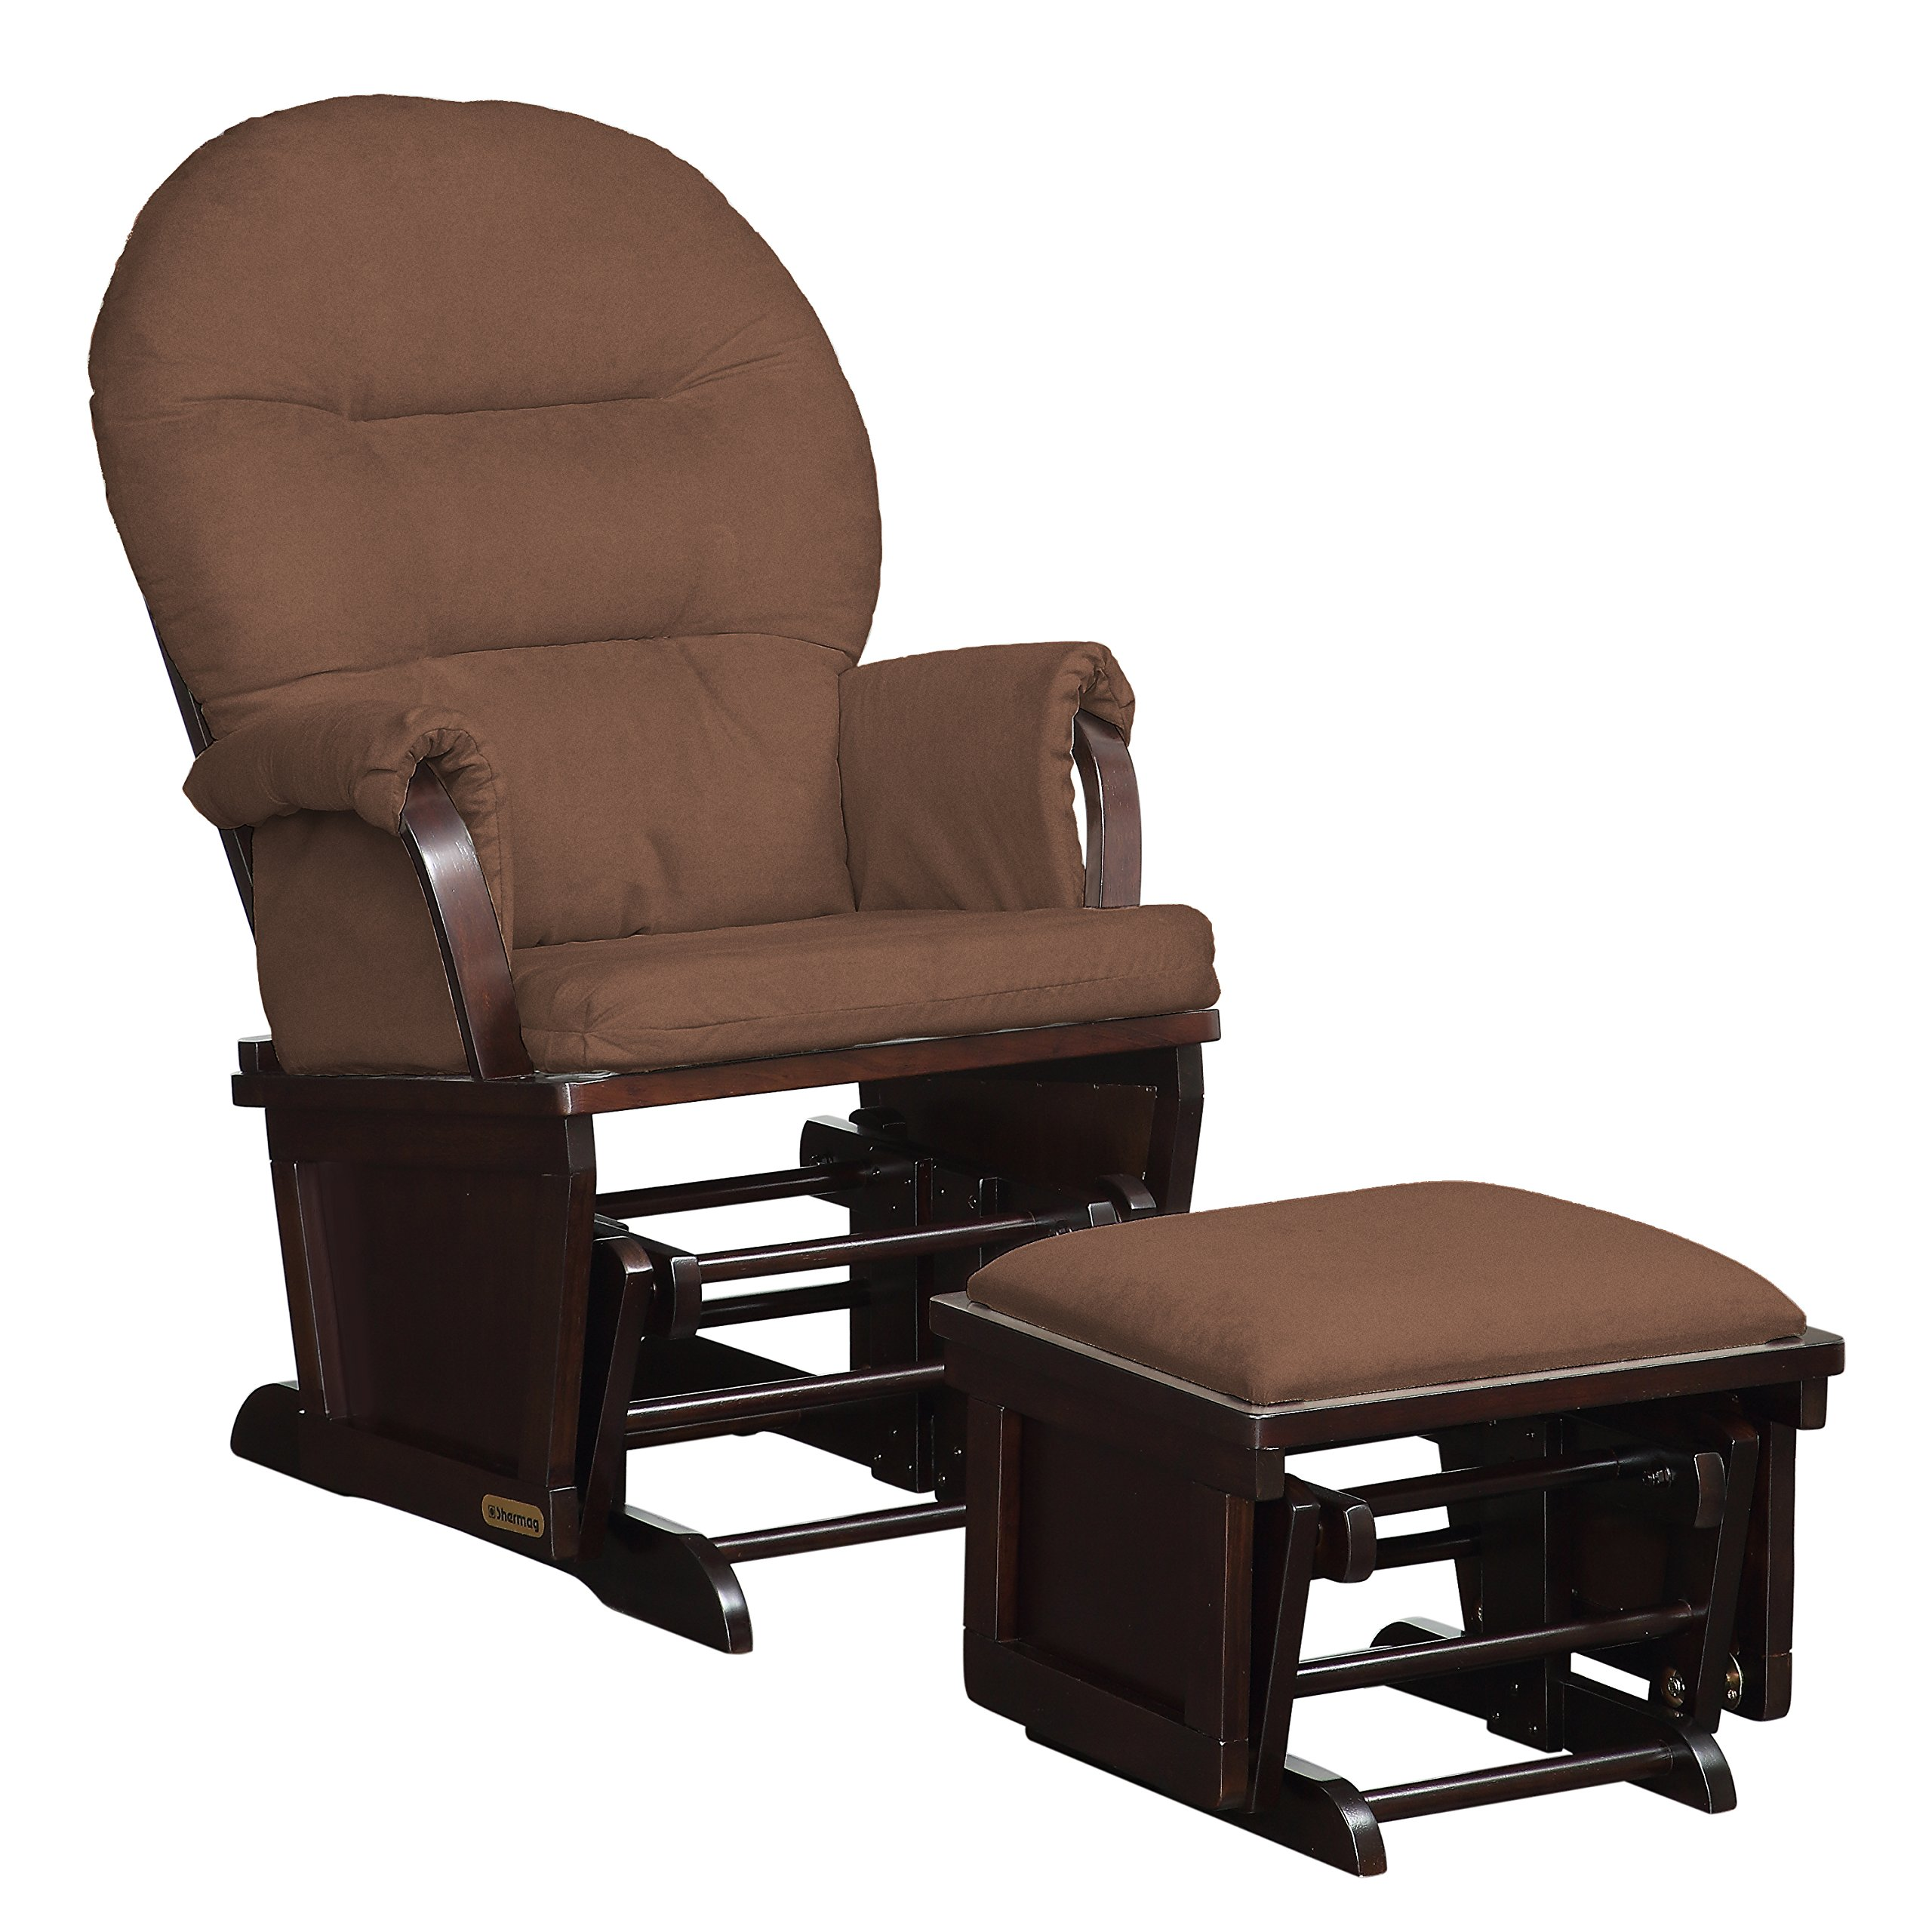 Lennox Contemporary Style Glider Chair and Ottoman Combo, Espresso with Chocolate by Lennox Furniture